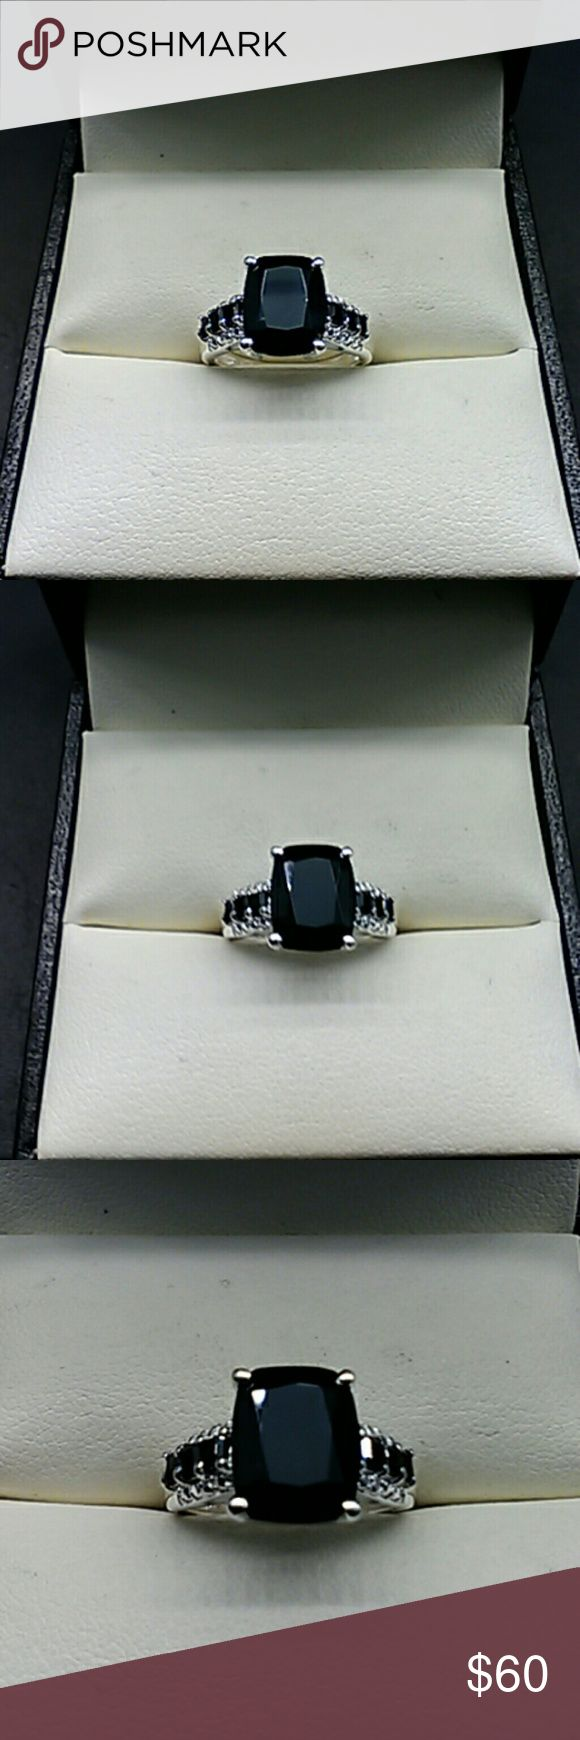 4.75 cts Genuine Black Spinel 925 Sterling Ring Very pretty Black Spinel sterling silver ring. 4.75 carats genuine natural Black Spinel. Solid 925 sterling silver ring. Size 5 FLASH SALE estate 925 Jewelry Rings